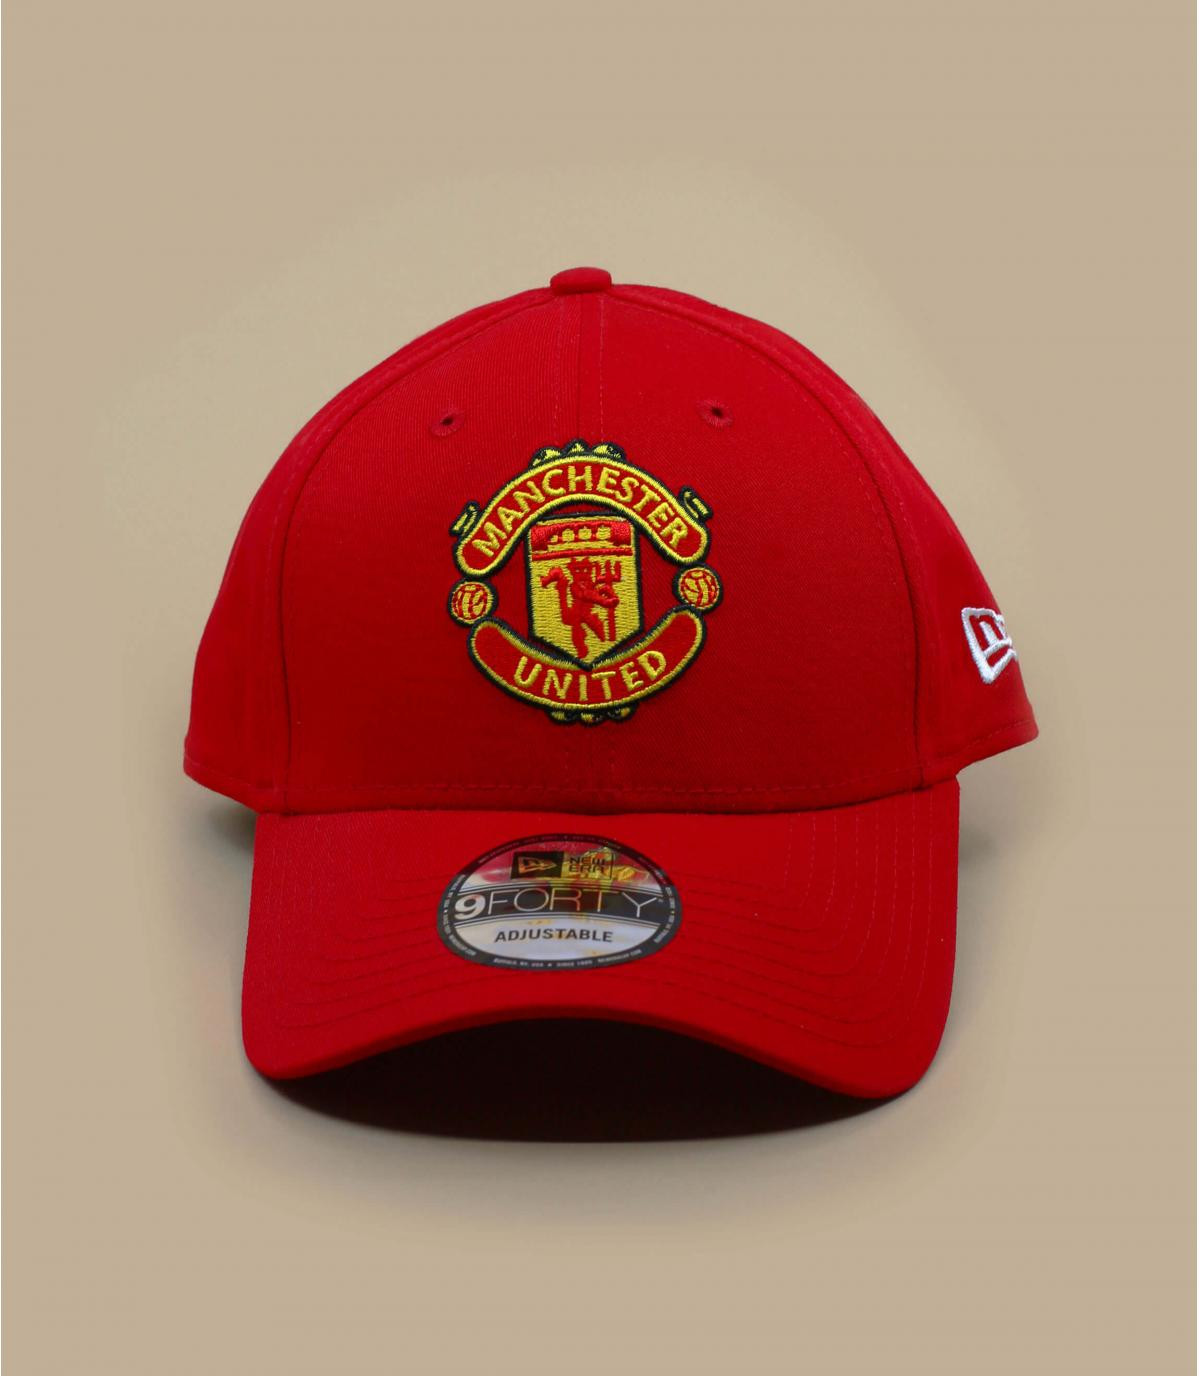 05ff5fa8353 Red Manchester United cap - Cap Manchester United red by New Era ...